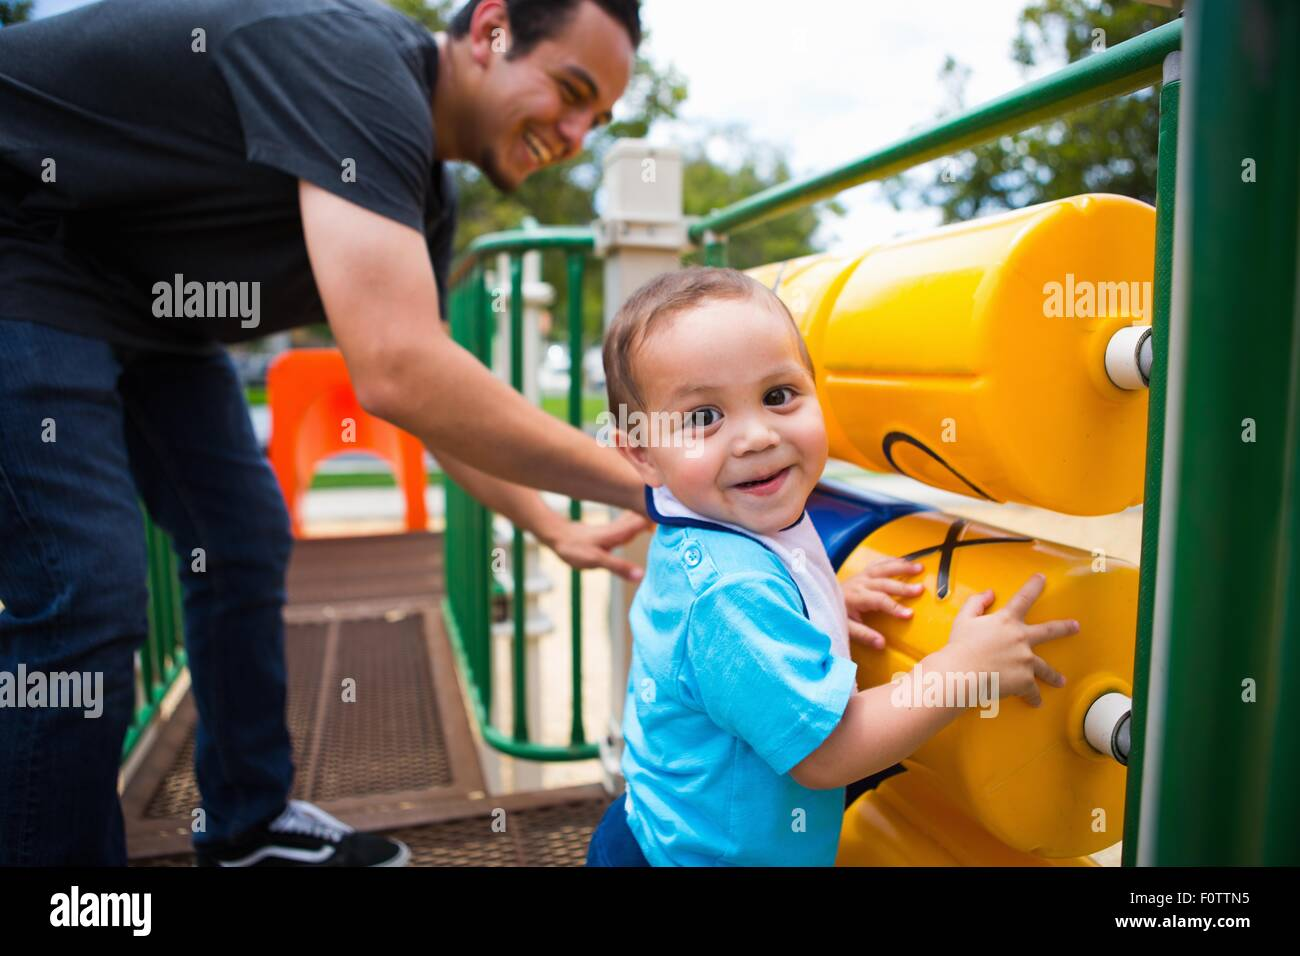 Young man playing with toddler brother on playground equipment - Stock Image